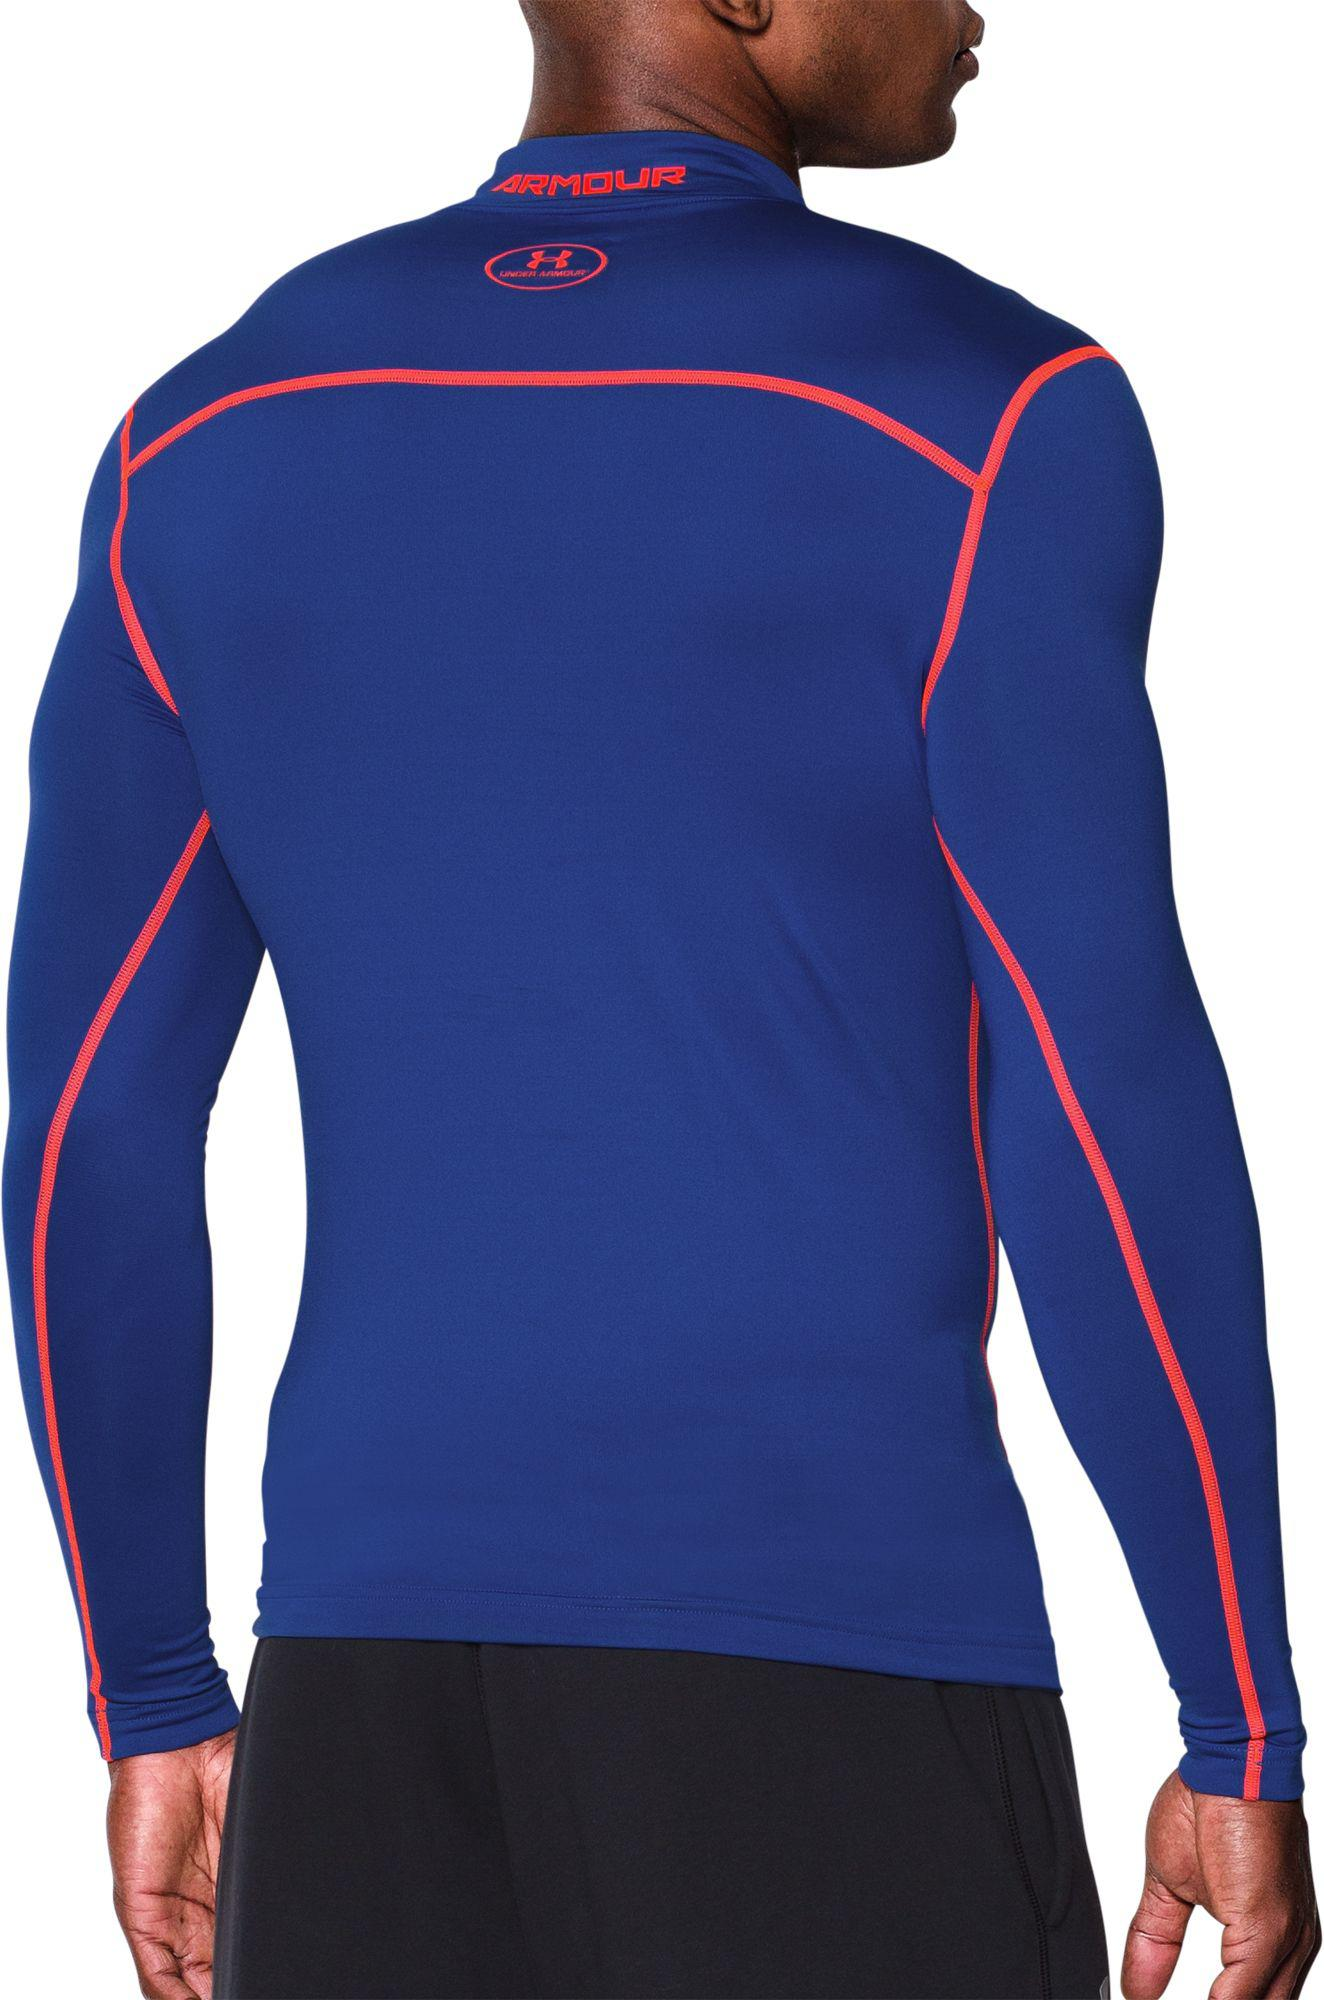 f53718670 Under Armour - Blue Coldgear Armour Compression Mock Neck Long Sleeve Shirt  for Men - Lyst